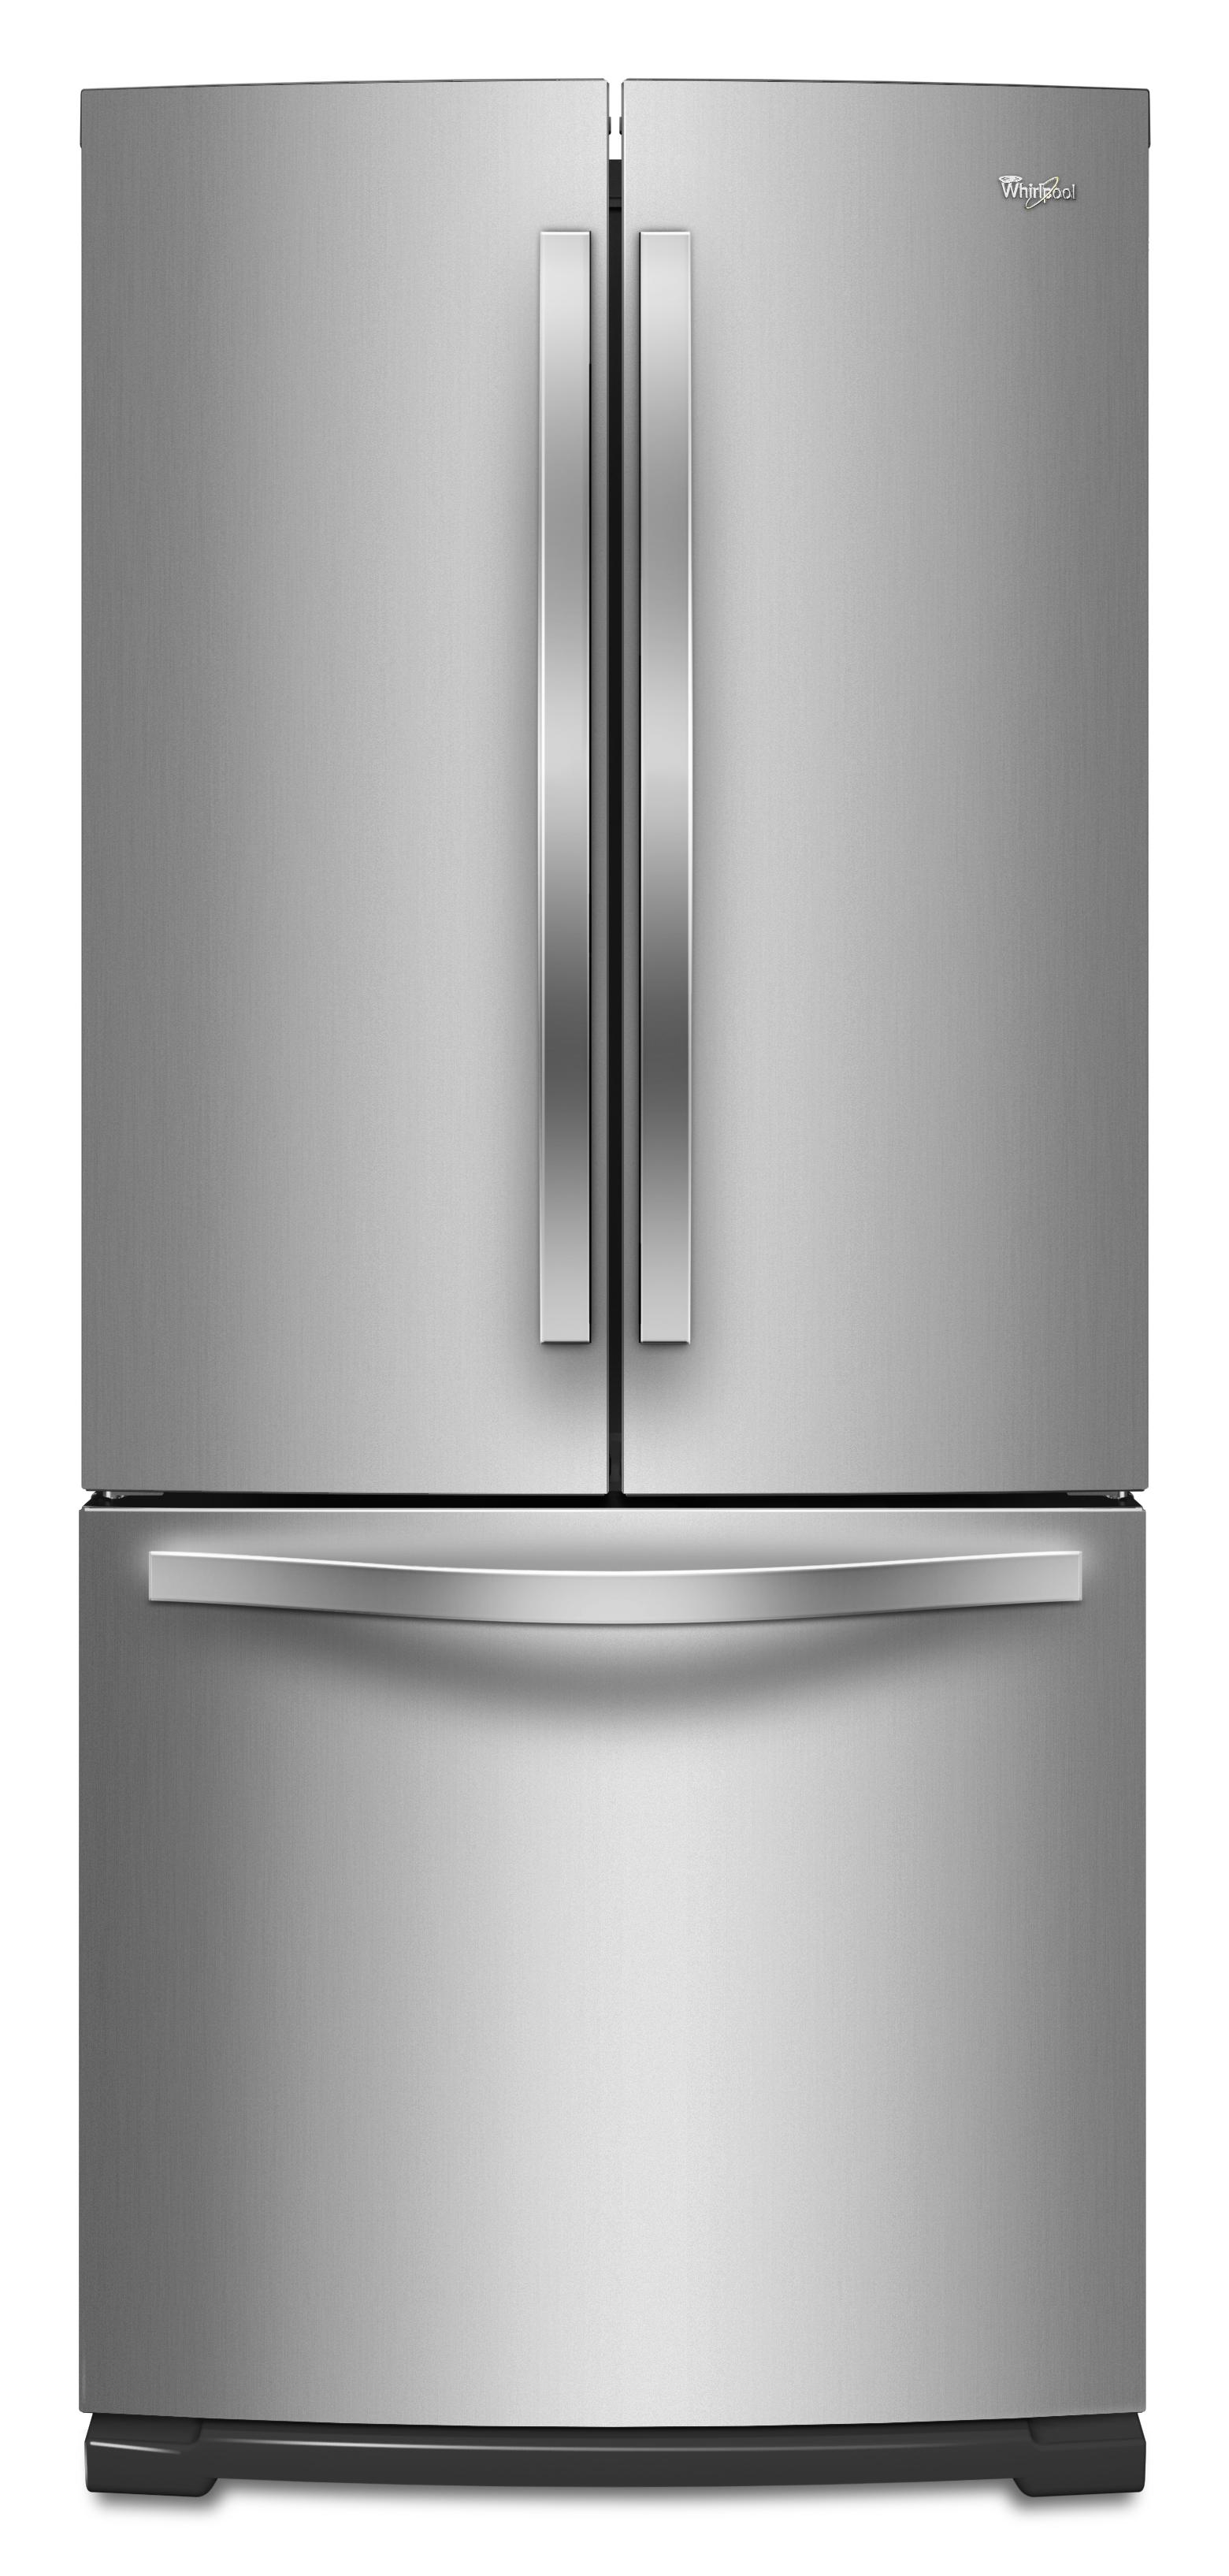 Whirlpool energy star 19 6 cu ft french door for 19 5 cu ft french door refrigerator